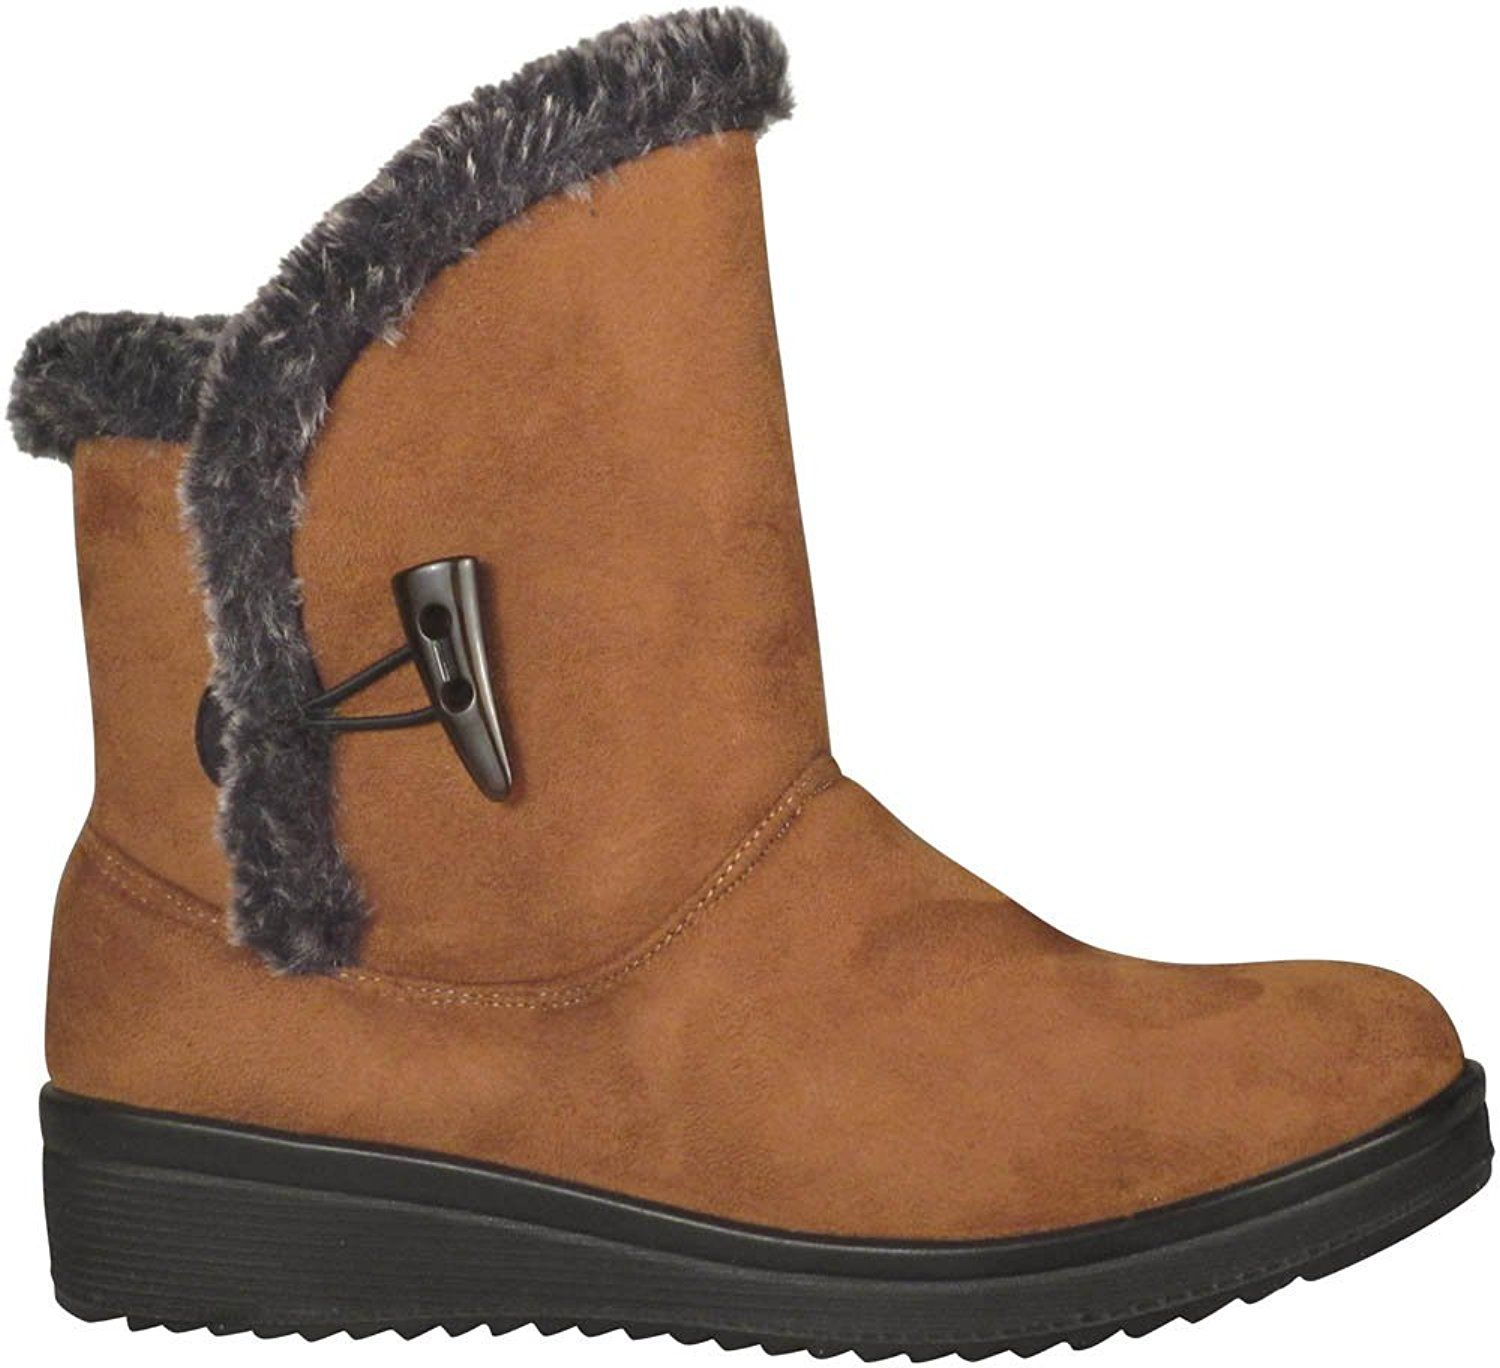 Womens Boots PATRIZIA Quill Camel